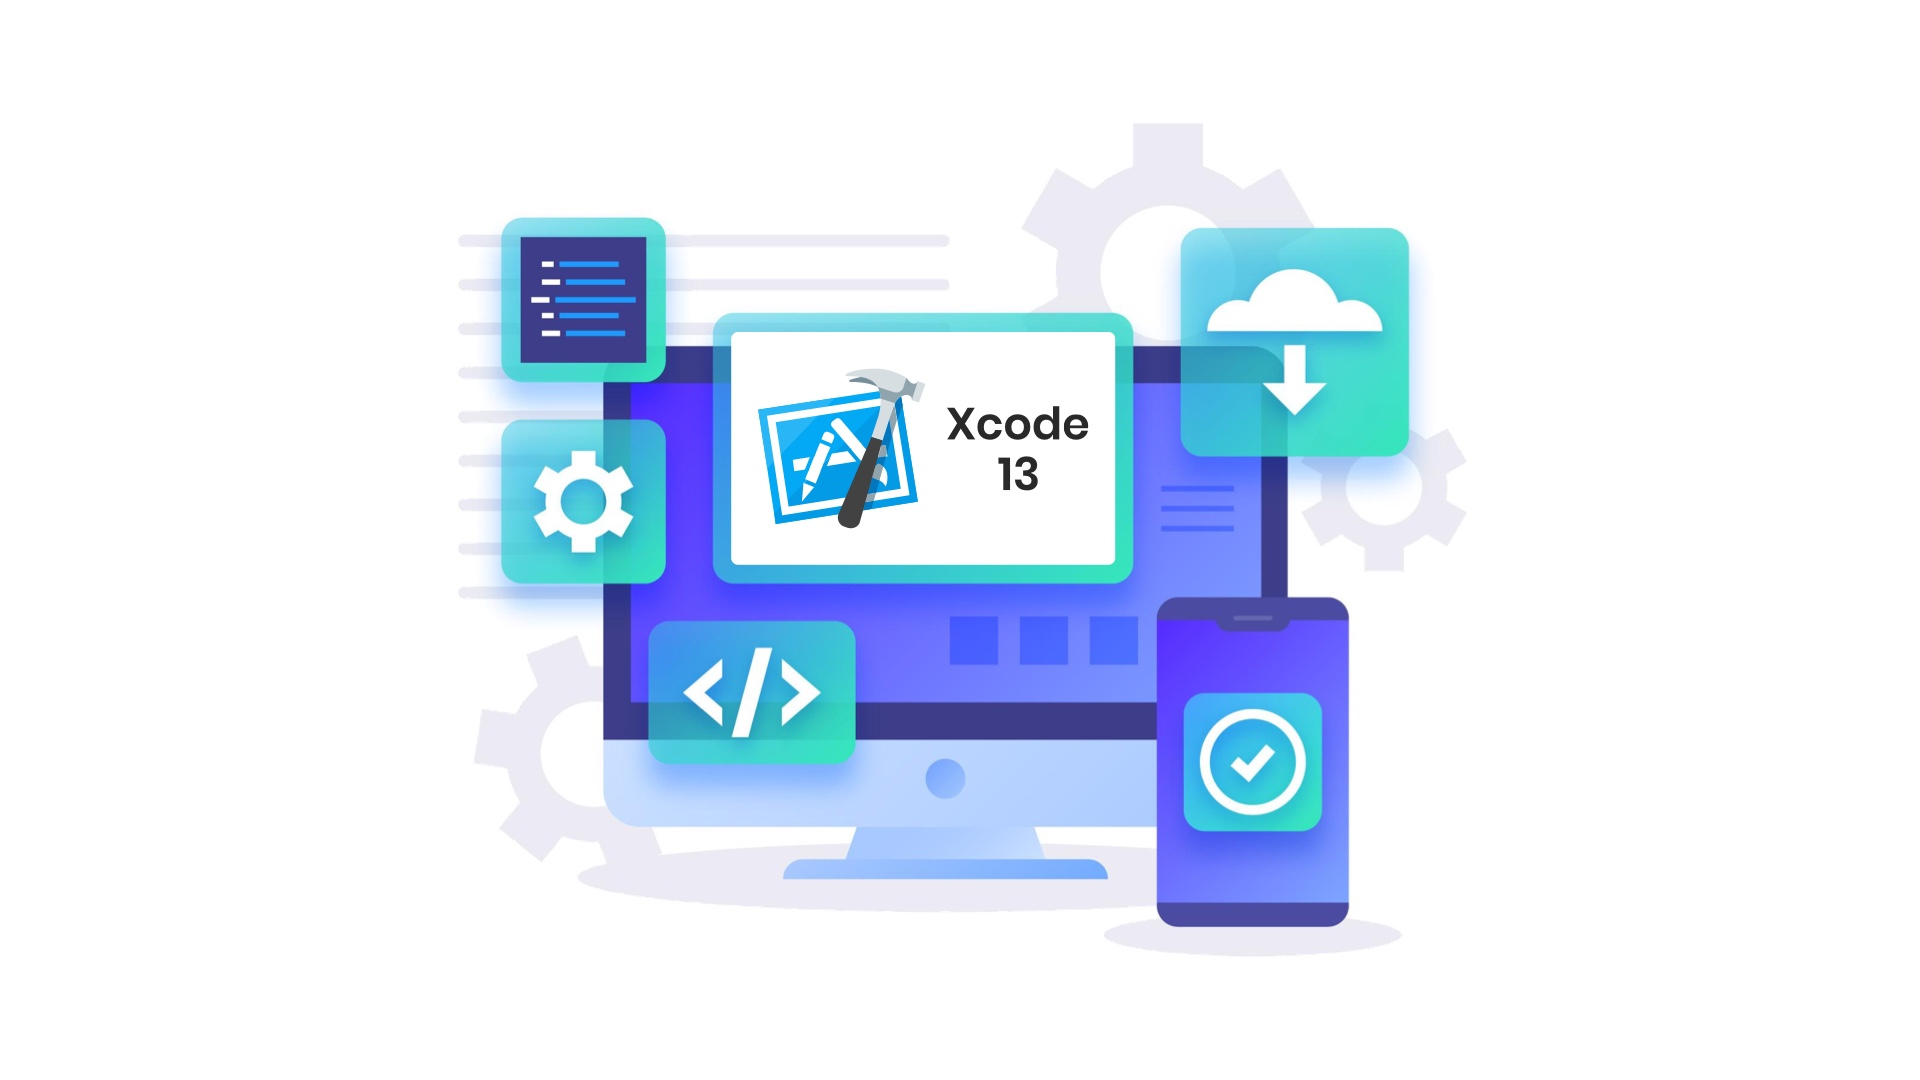 What's new in Xcode-13?